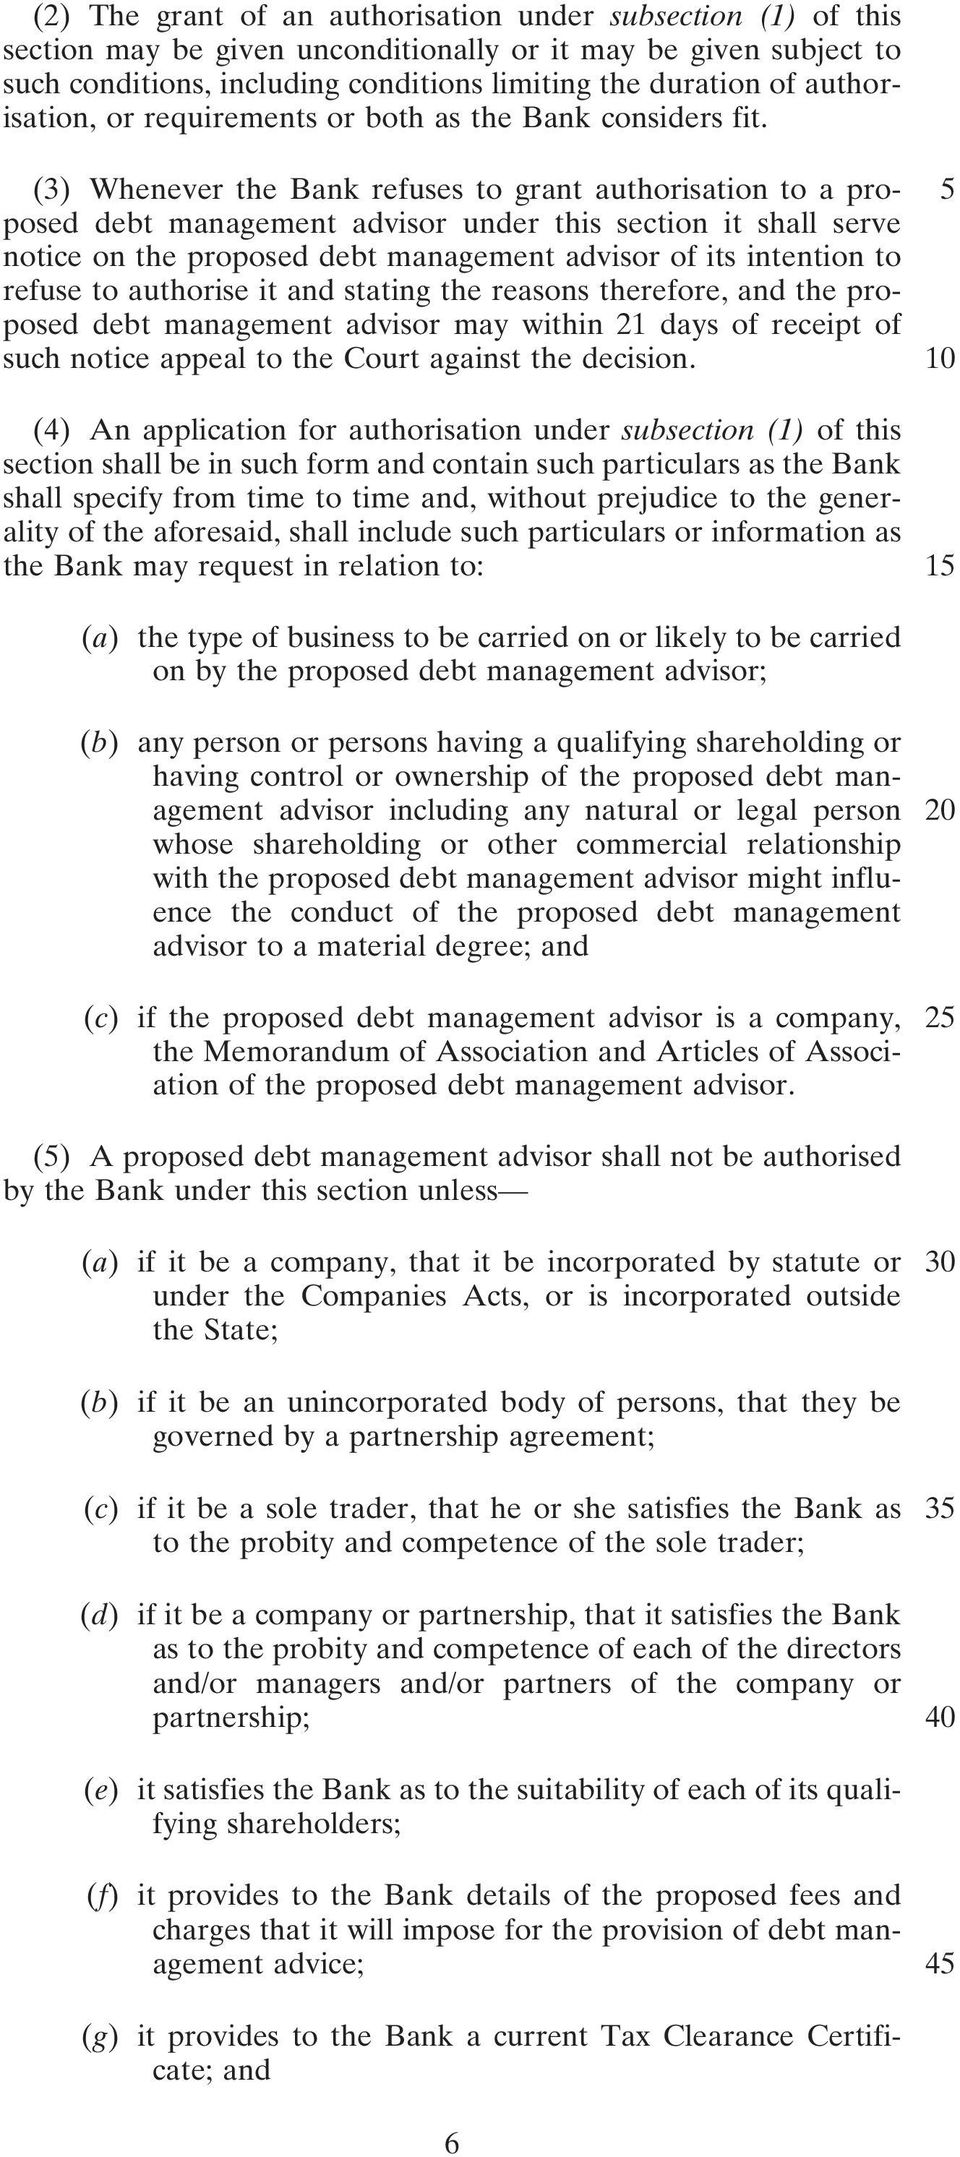 (3) Whenever the Bank refuses to grant authorisation to a pro- 5 posed debt management advisor under this section it shall serve notice on the proposed debt management advisor of its intention to